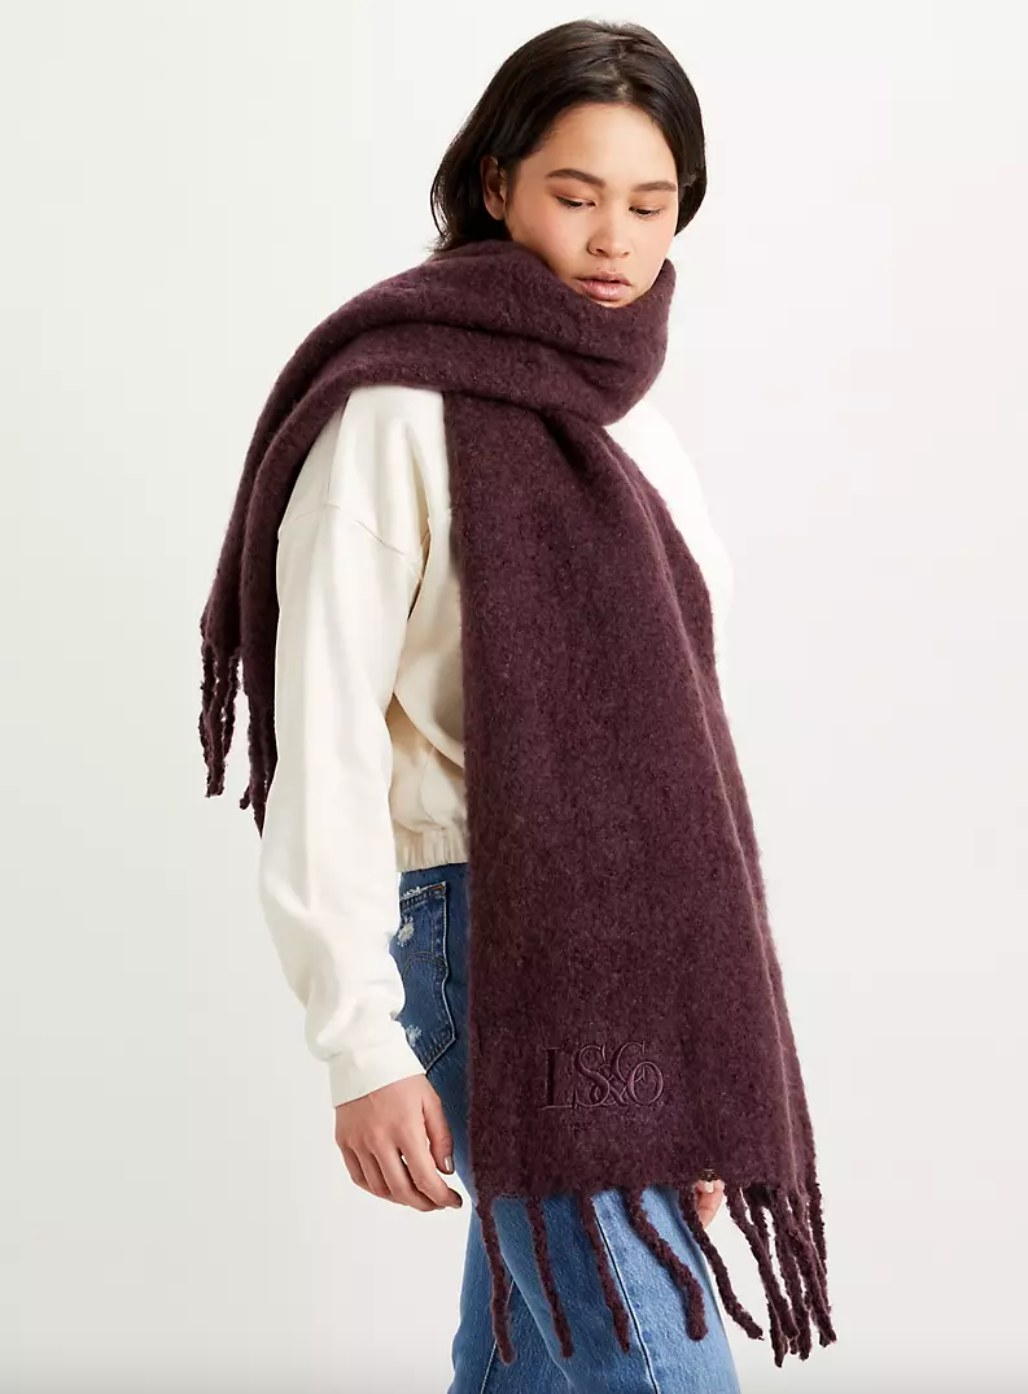 The fuzzy wrap scarf in bordeaux